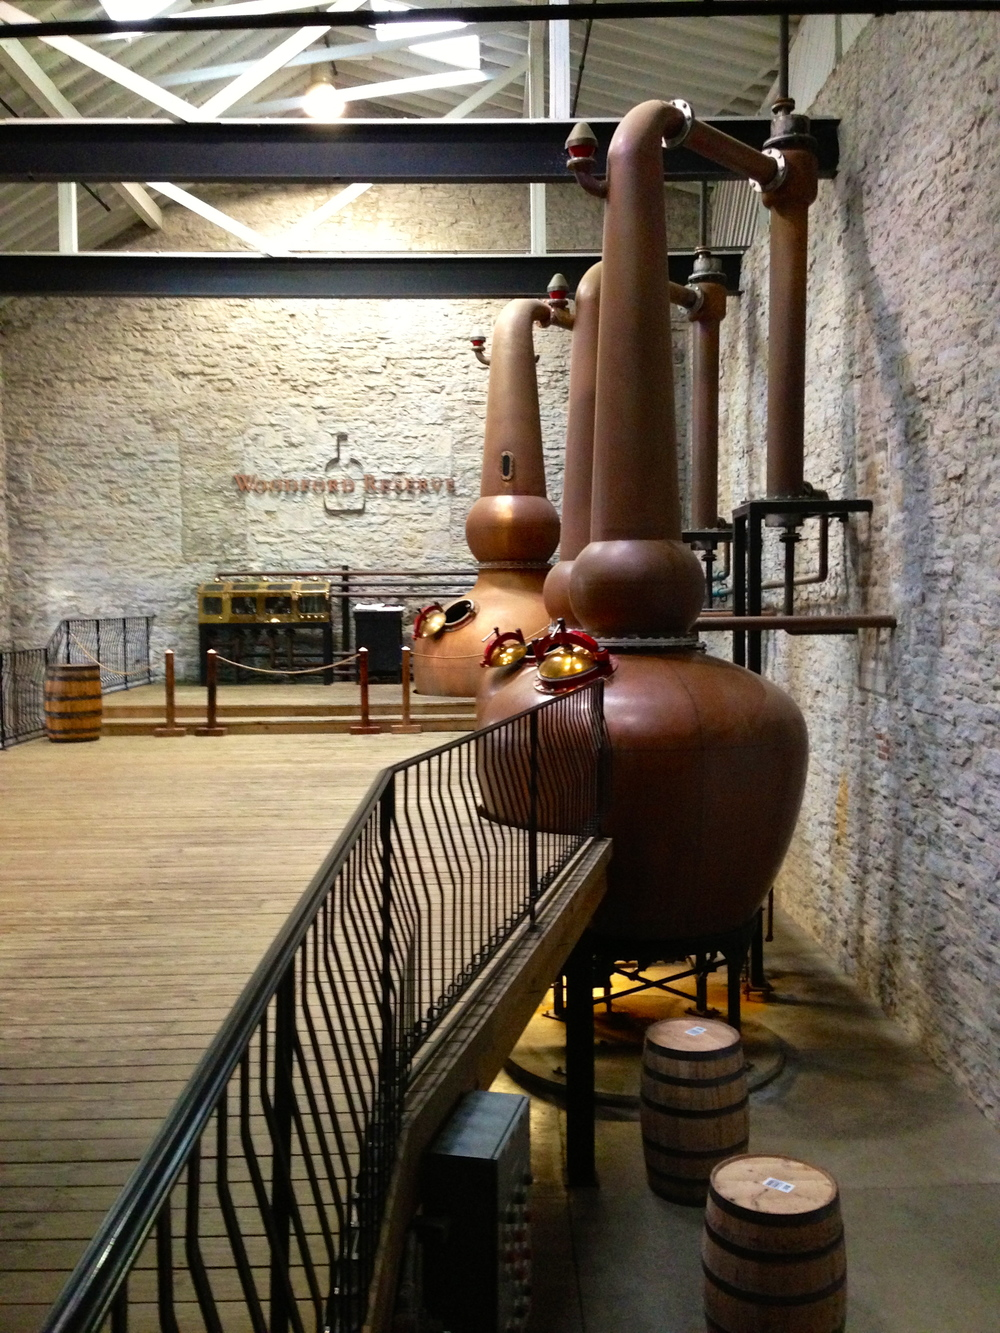 The triple copper stills at  Woodford Reserve .